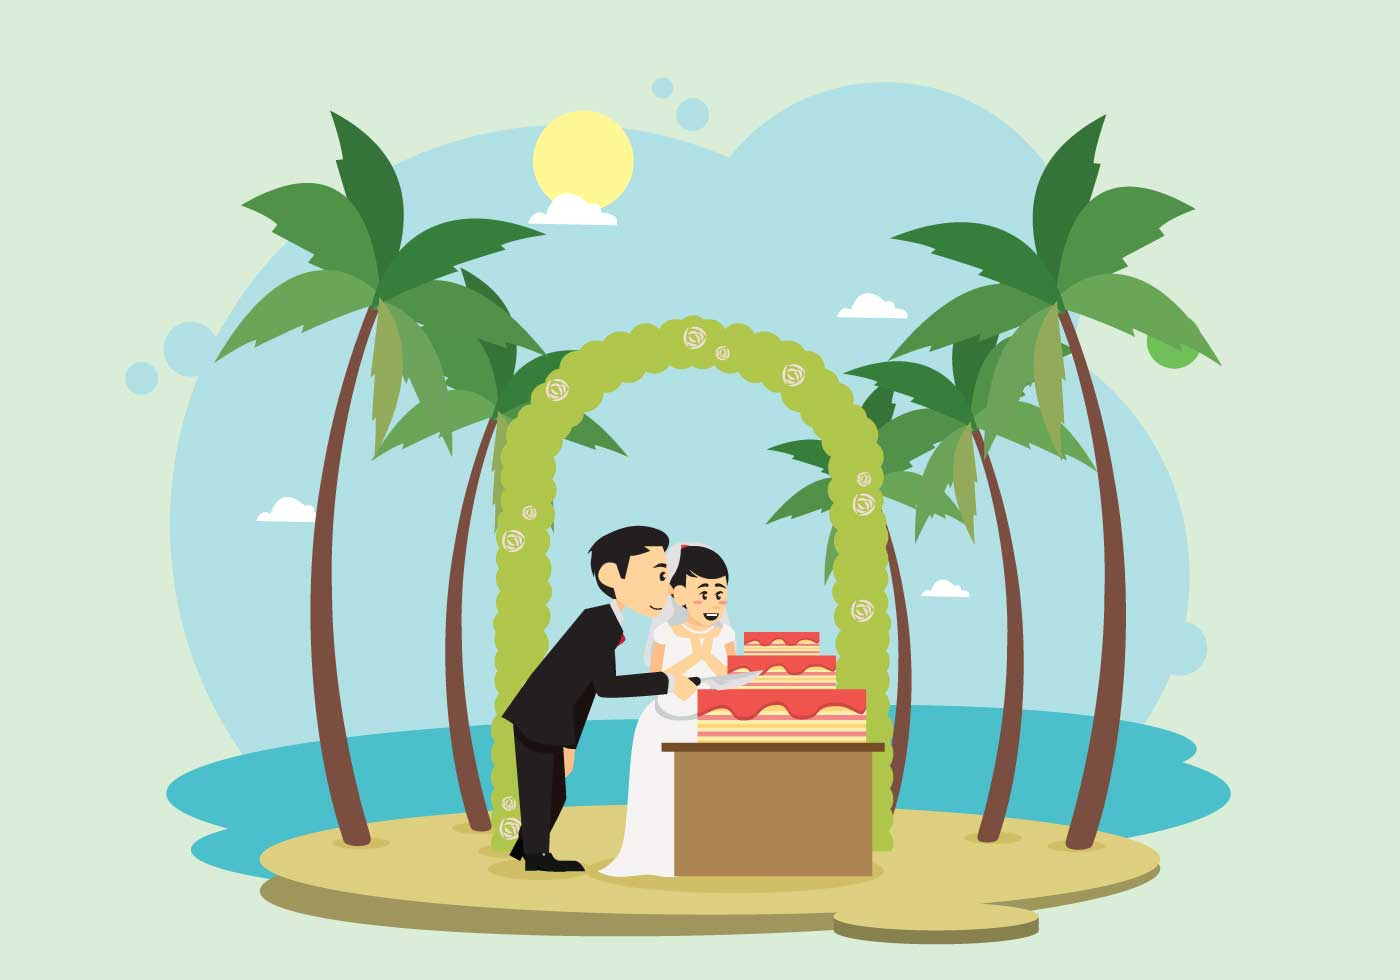 Wedding Ceremony On The Beach Illustration - Download Free ...